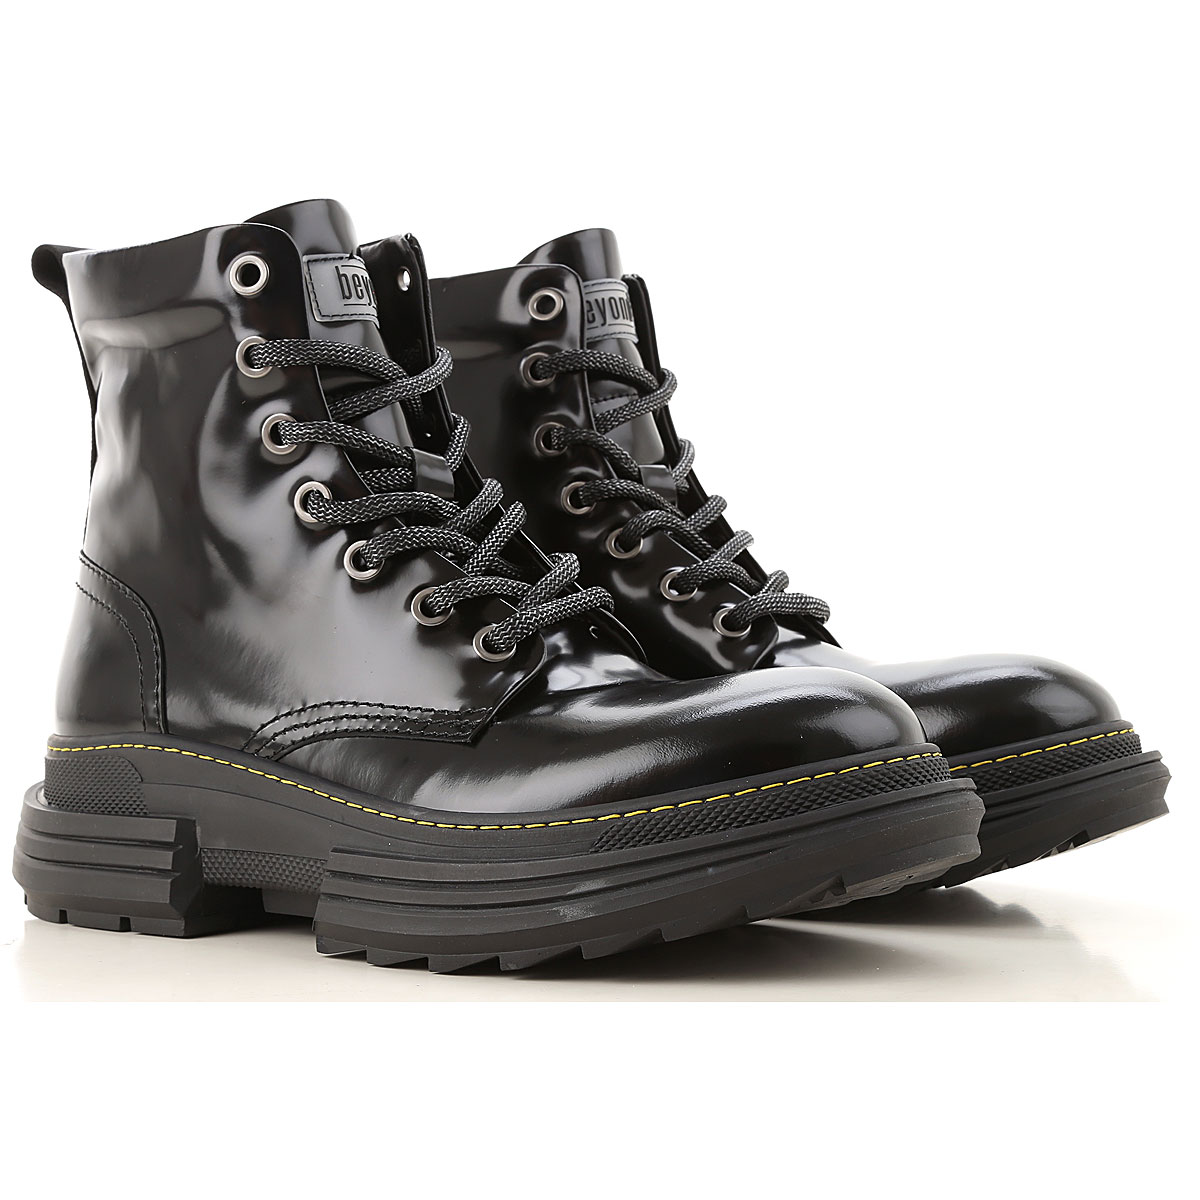 Beyond Boots for Men, Booties, Black, Leather, 2019, 10 10.5